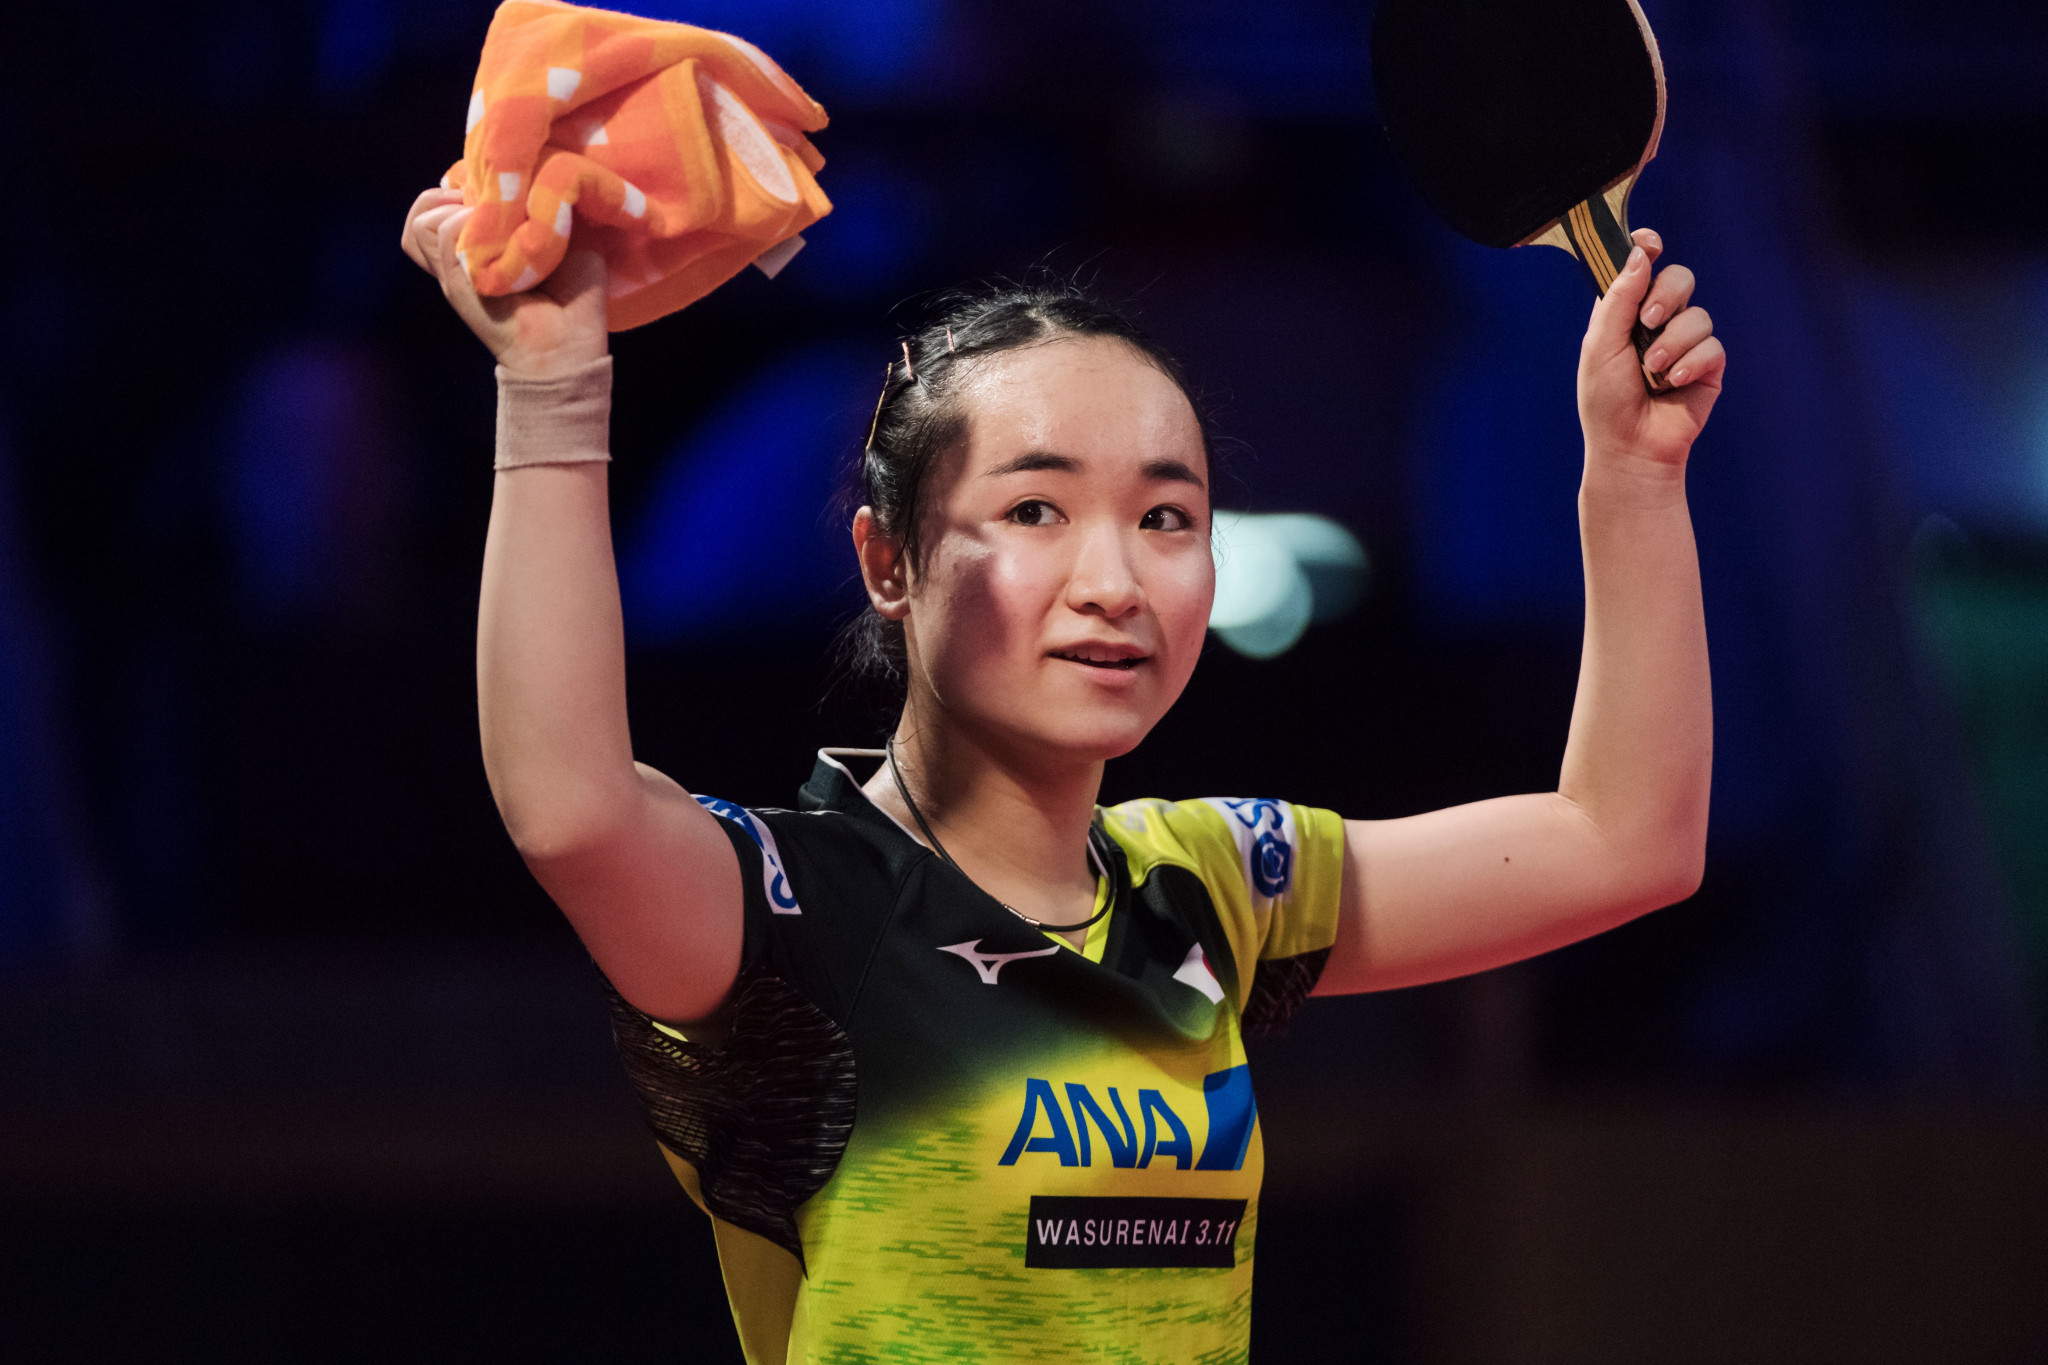 Japan's Mima Ito is looking to become only the second teenager to win the women's singles title at the World Tour Grand Finals, which is due to open in Incheon tomorrow ©Getty Images